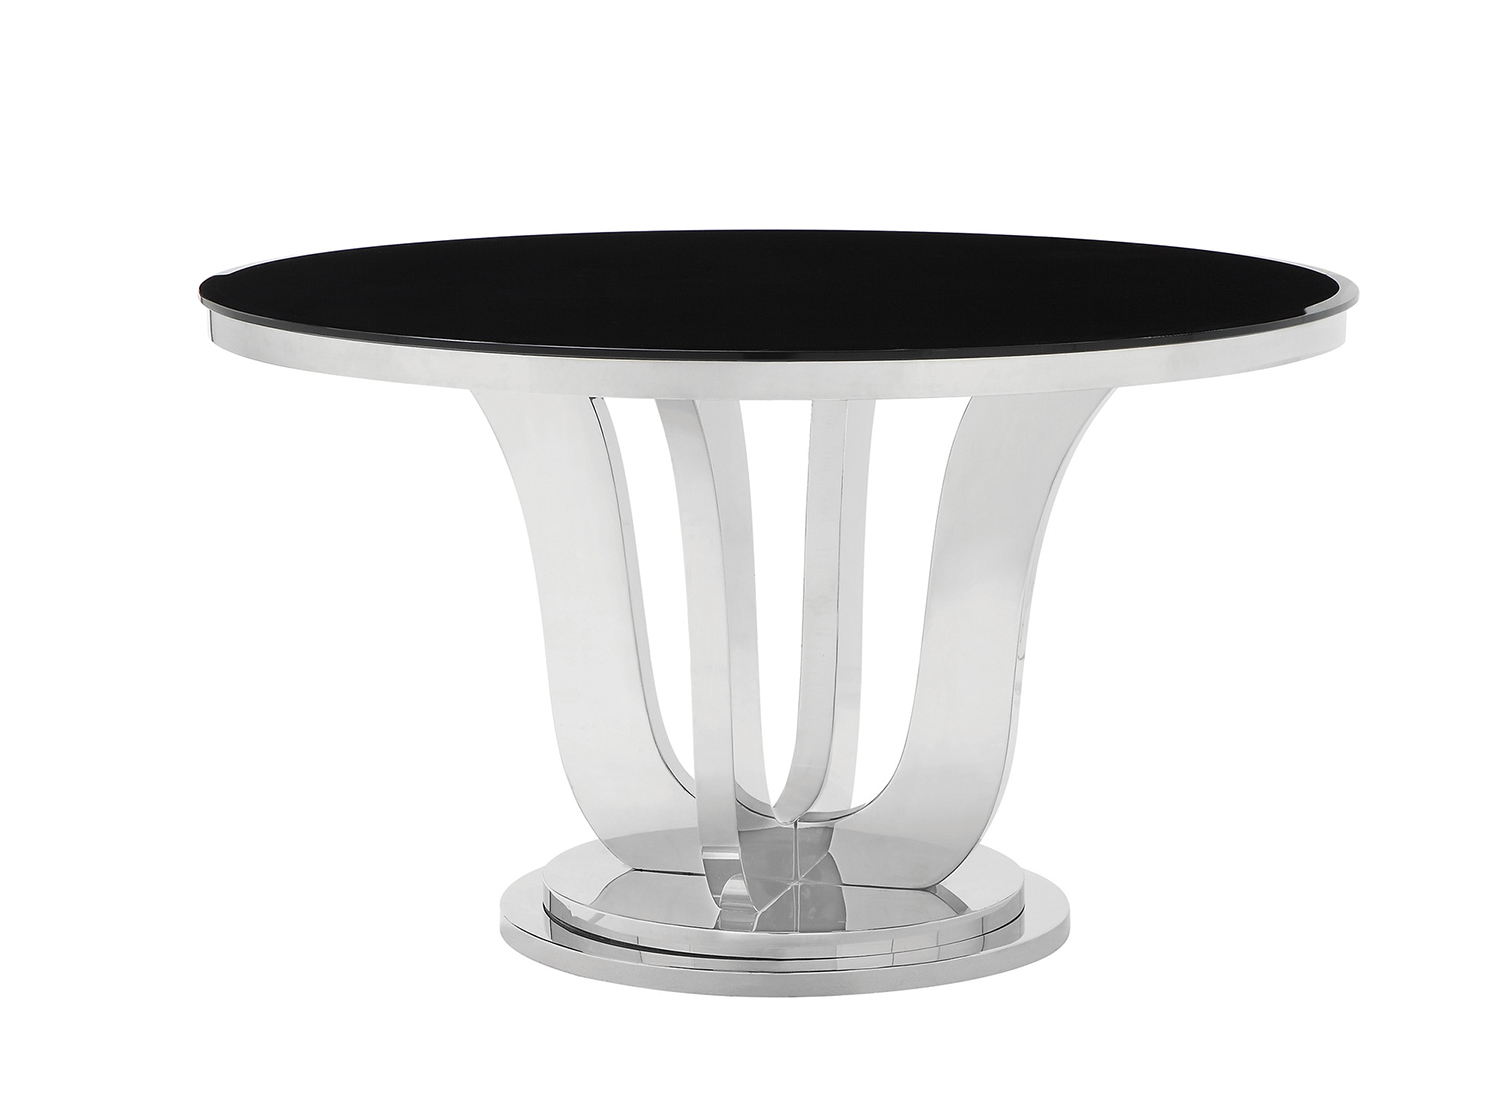 Coaster Blasio Dining Table - Chrome